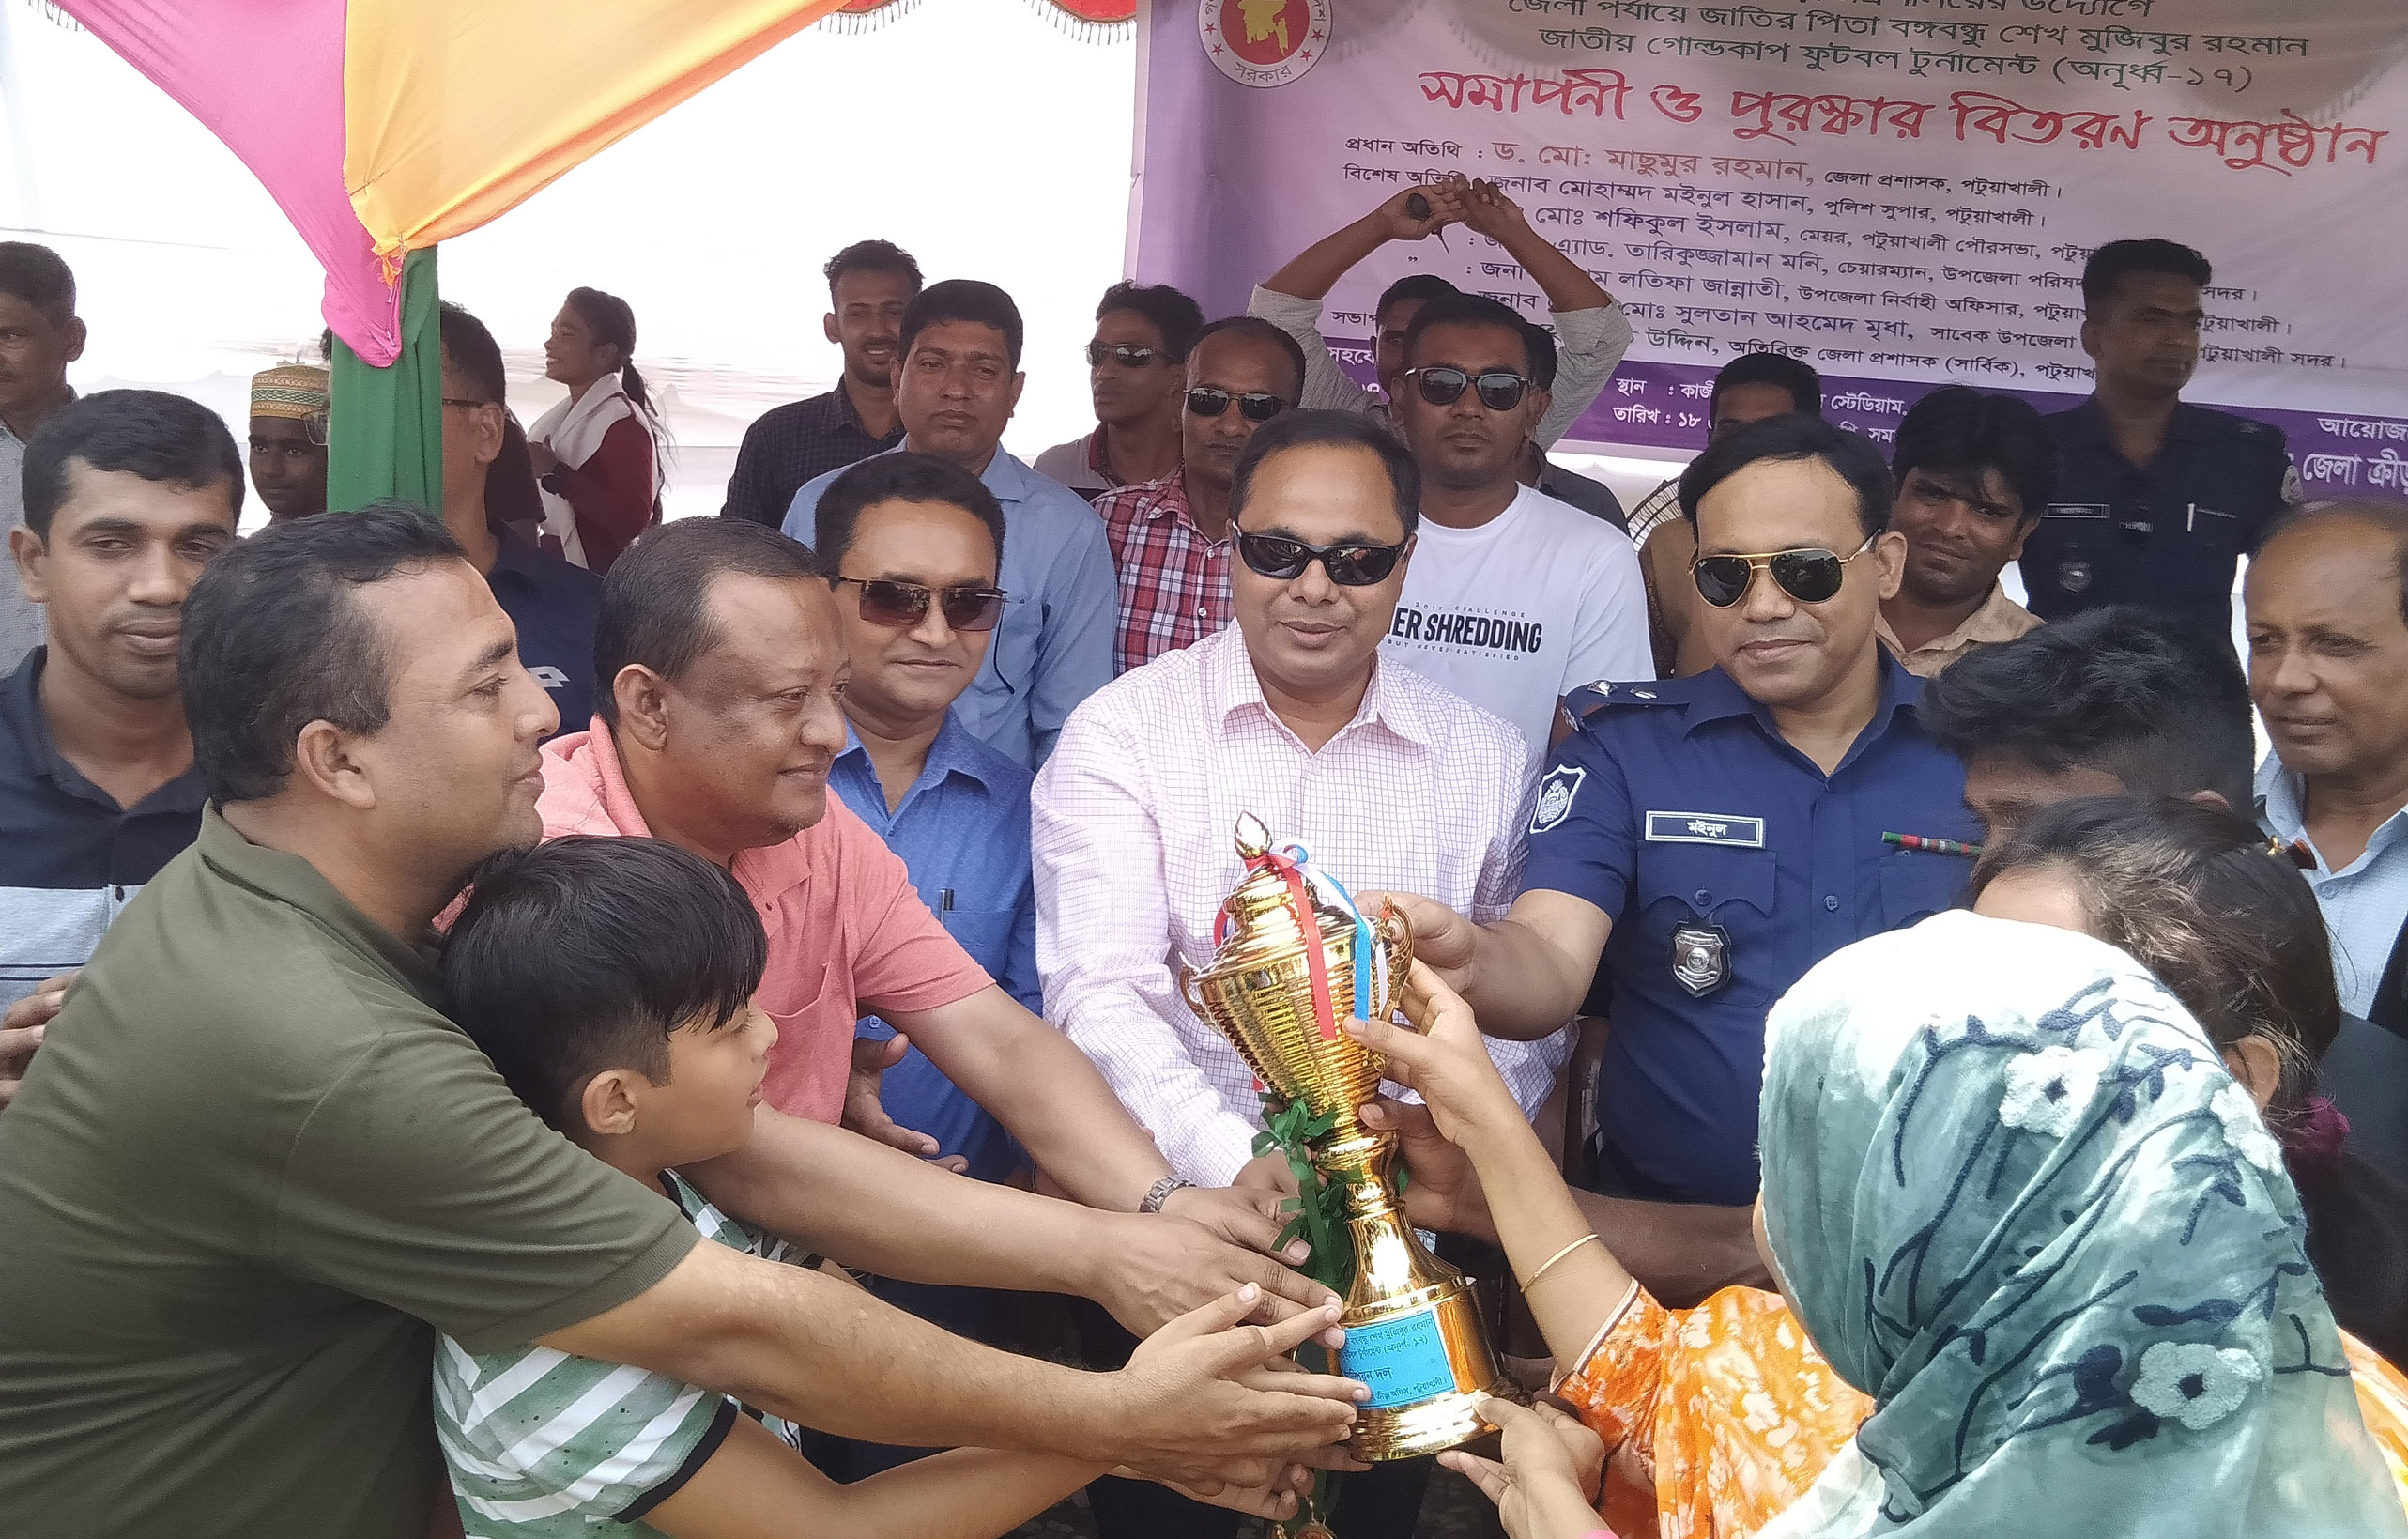 DC of Patuakhali District Dr Masumur Rahman handing over the trophy to Patuakhali Sadar Upazila Football team, which emerged as the champions of the district level of the Bangabandhu Sheikh Mujibur Rahman National Gold Cup Football (Under-17) Tournament at Advocate Abul Kashem Stadium in Patuakhali on Tuesday.